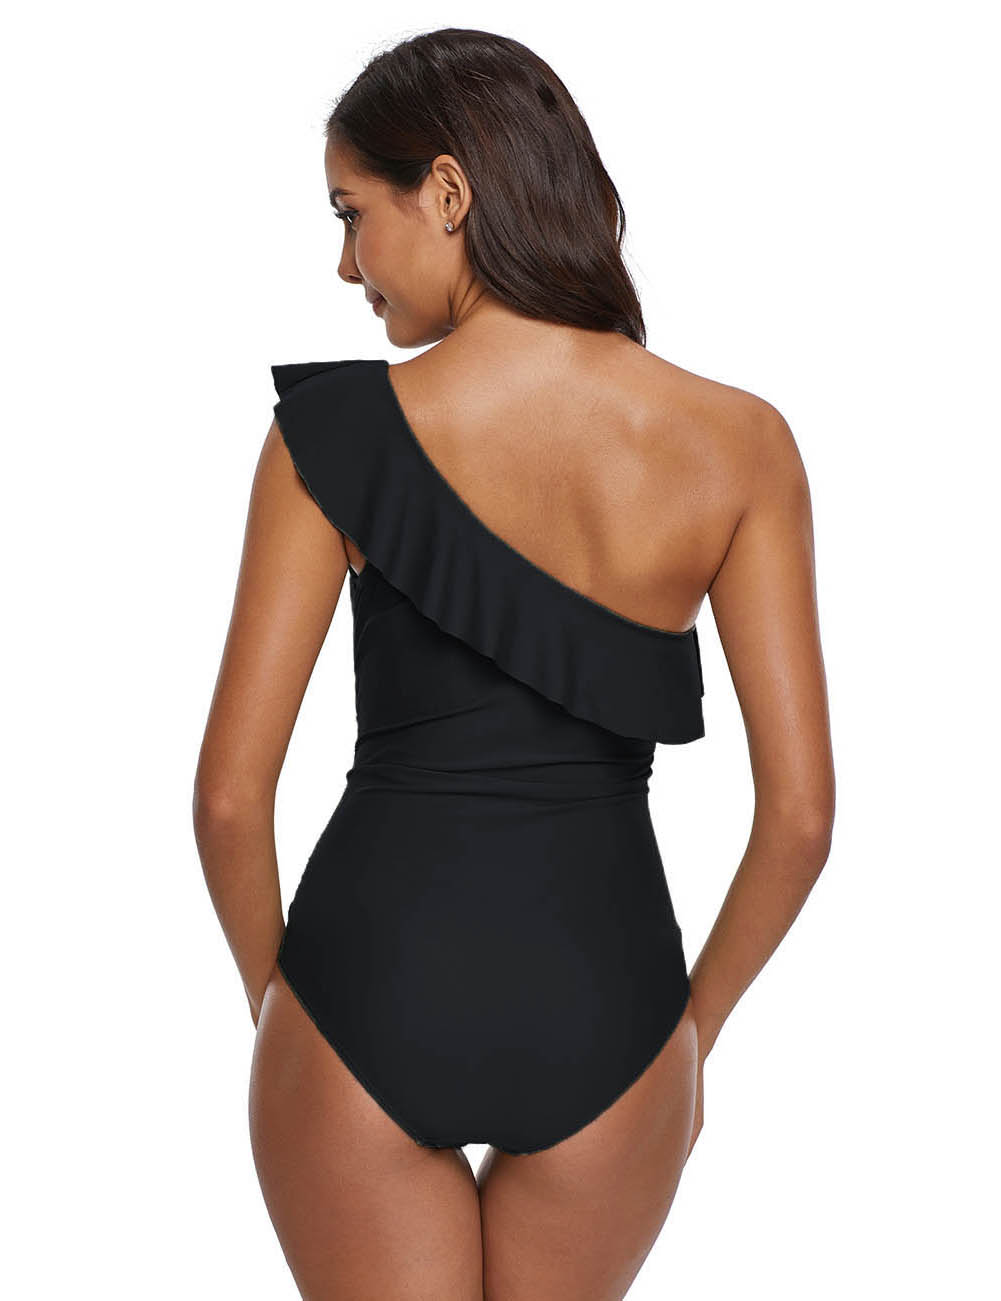 //cdn.affectcloud.com/hexinfashion/upload/imgs/Swimwear/One_Piece_Swimwear/F185037-BK1/F185037-BK1-201911055dc11d959d640.jpg